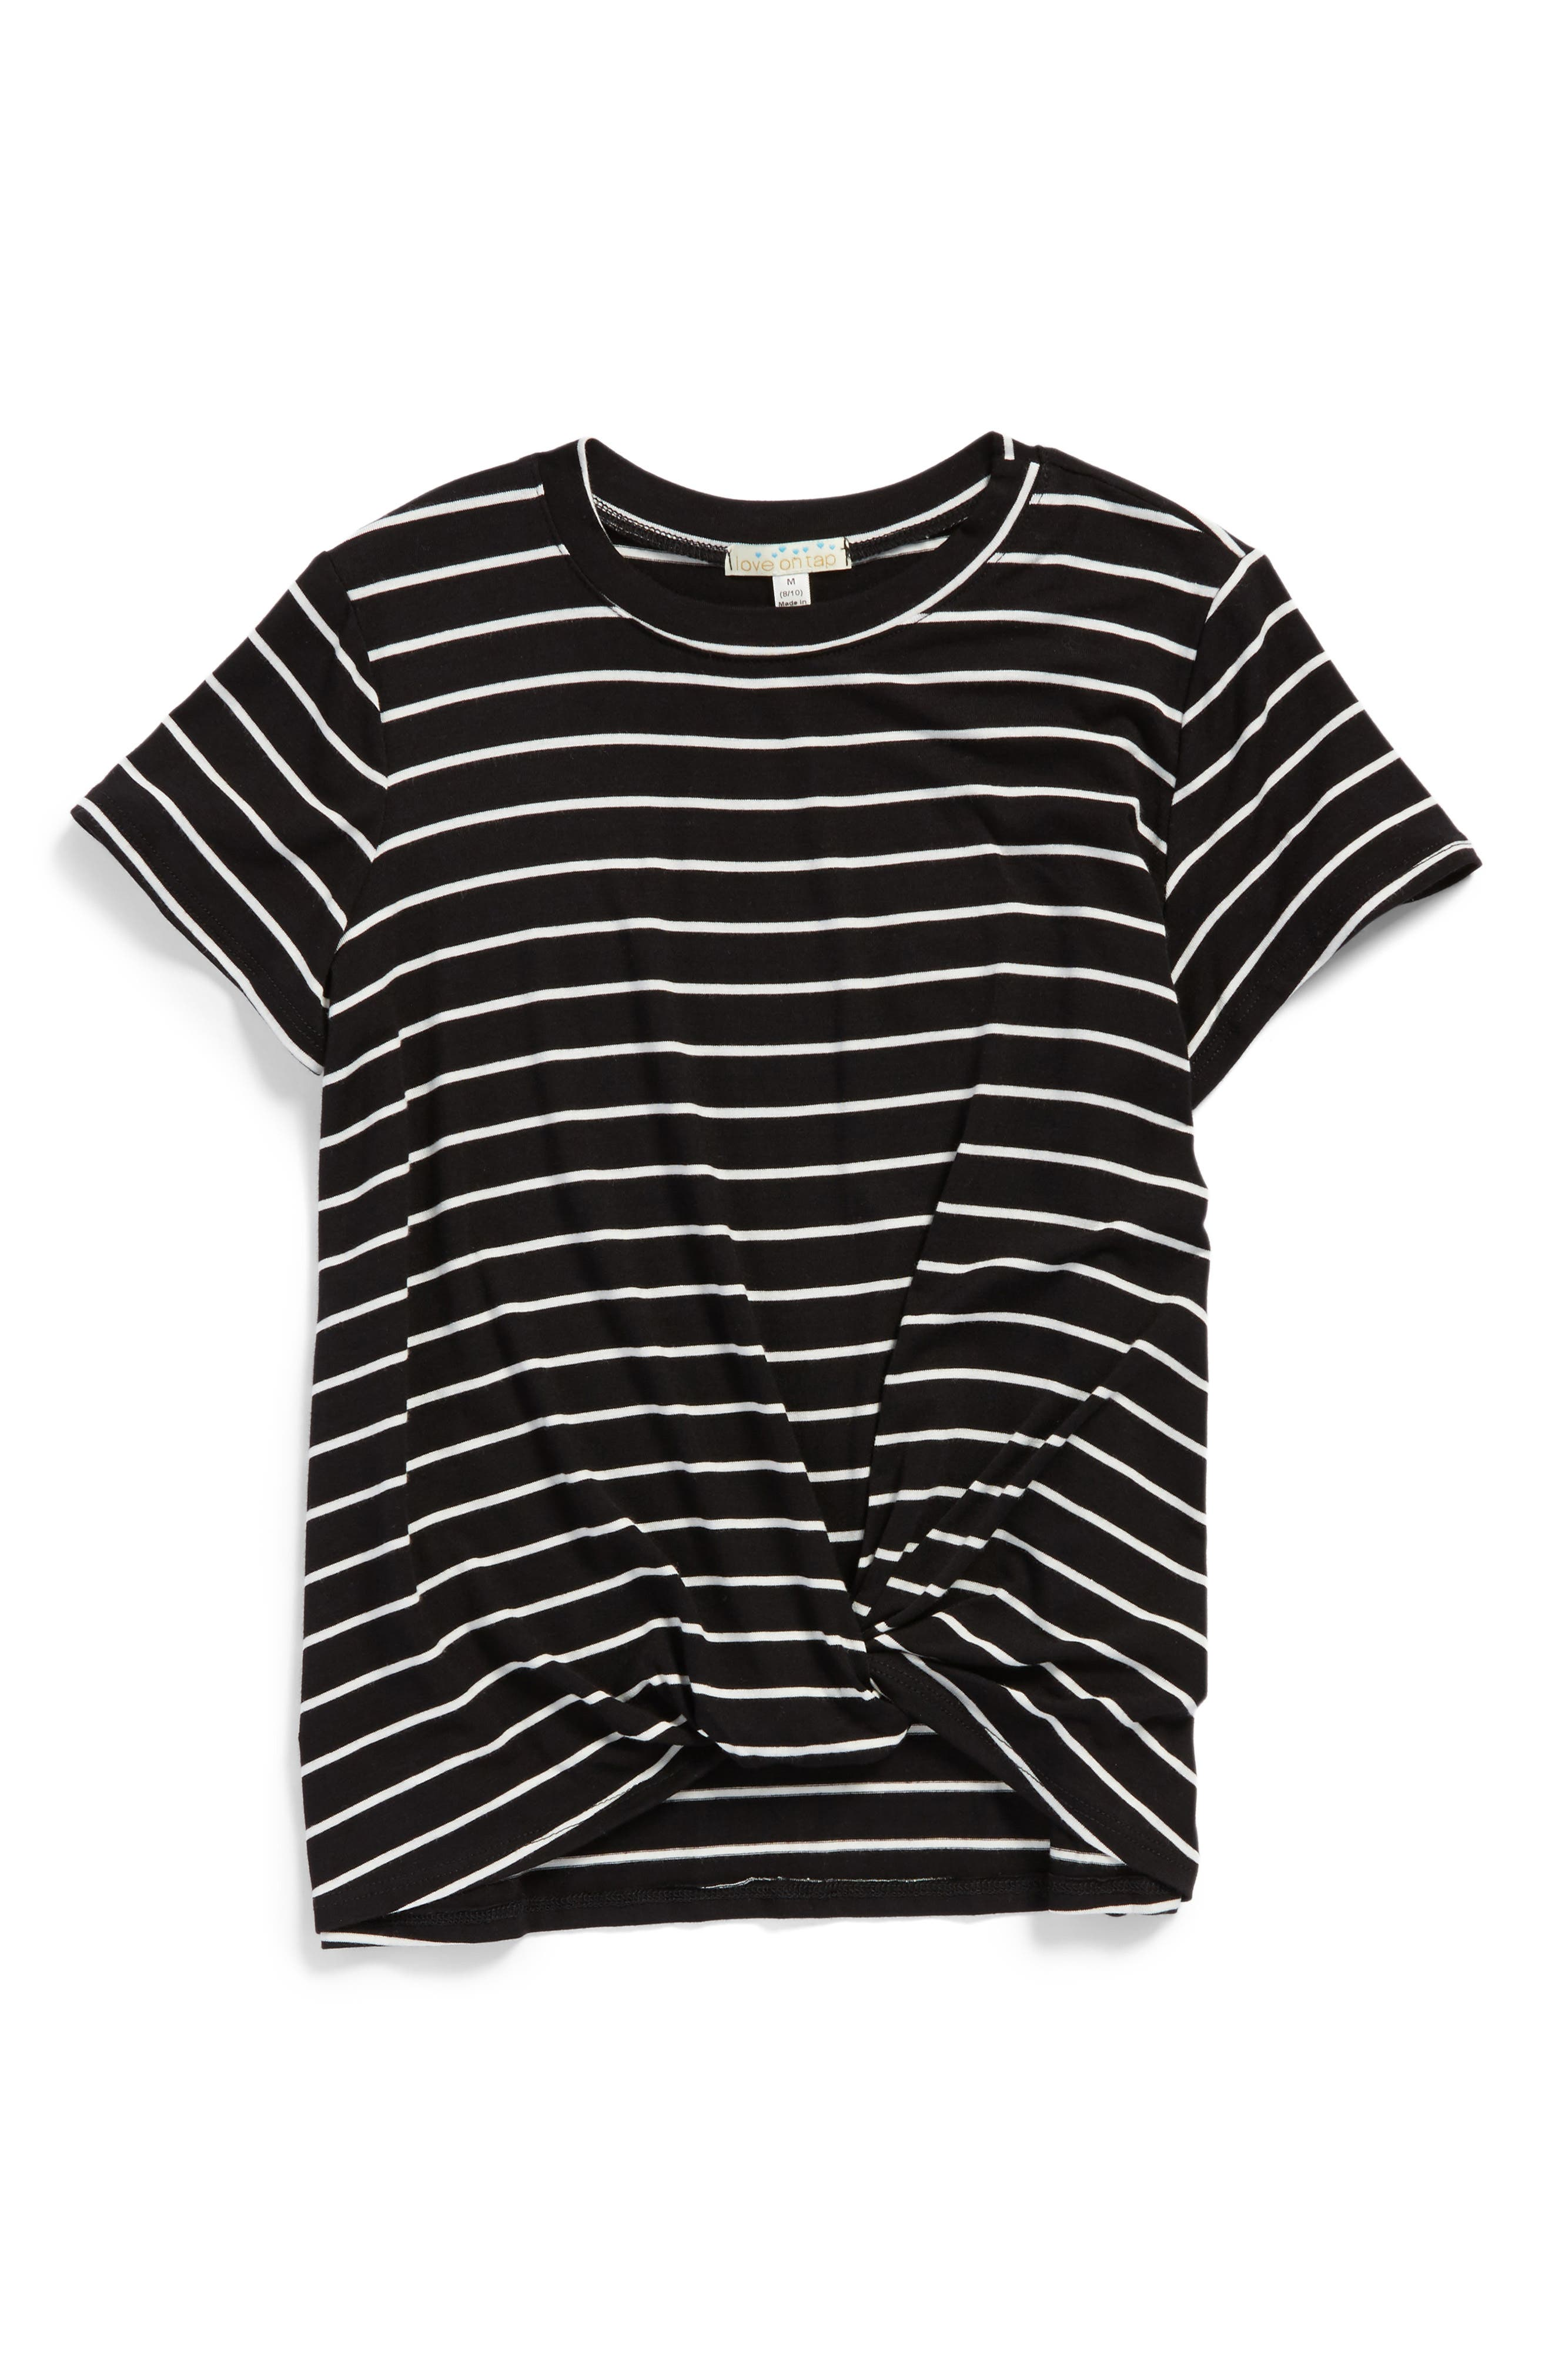 Knotted Stripe Tee,                             Main thumbnail 1, color,                             001